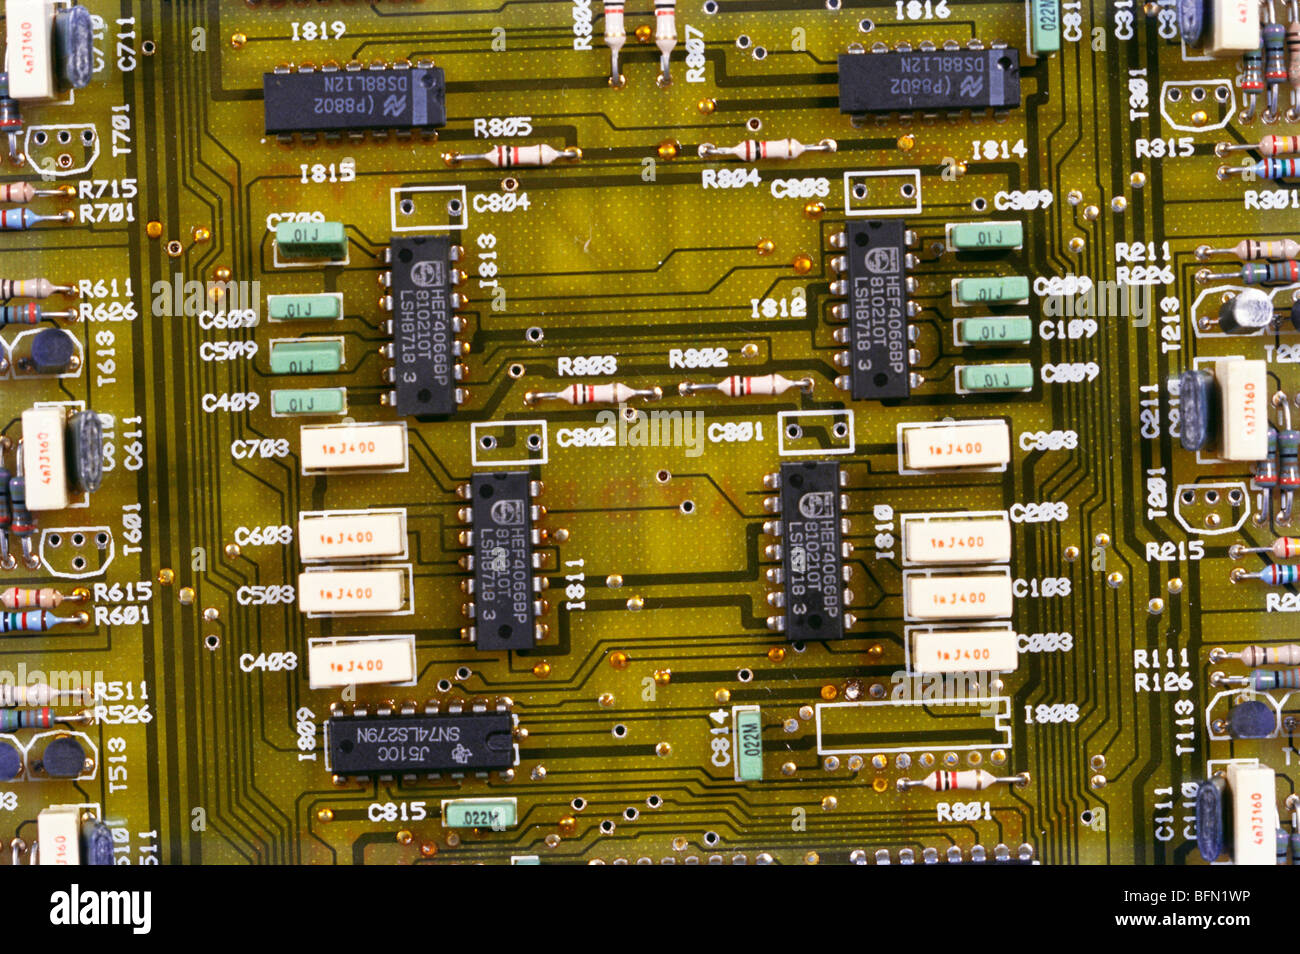 RJP 61272 : PCB electronic printed circuit board ; India - Stock Image